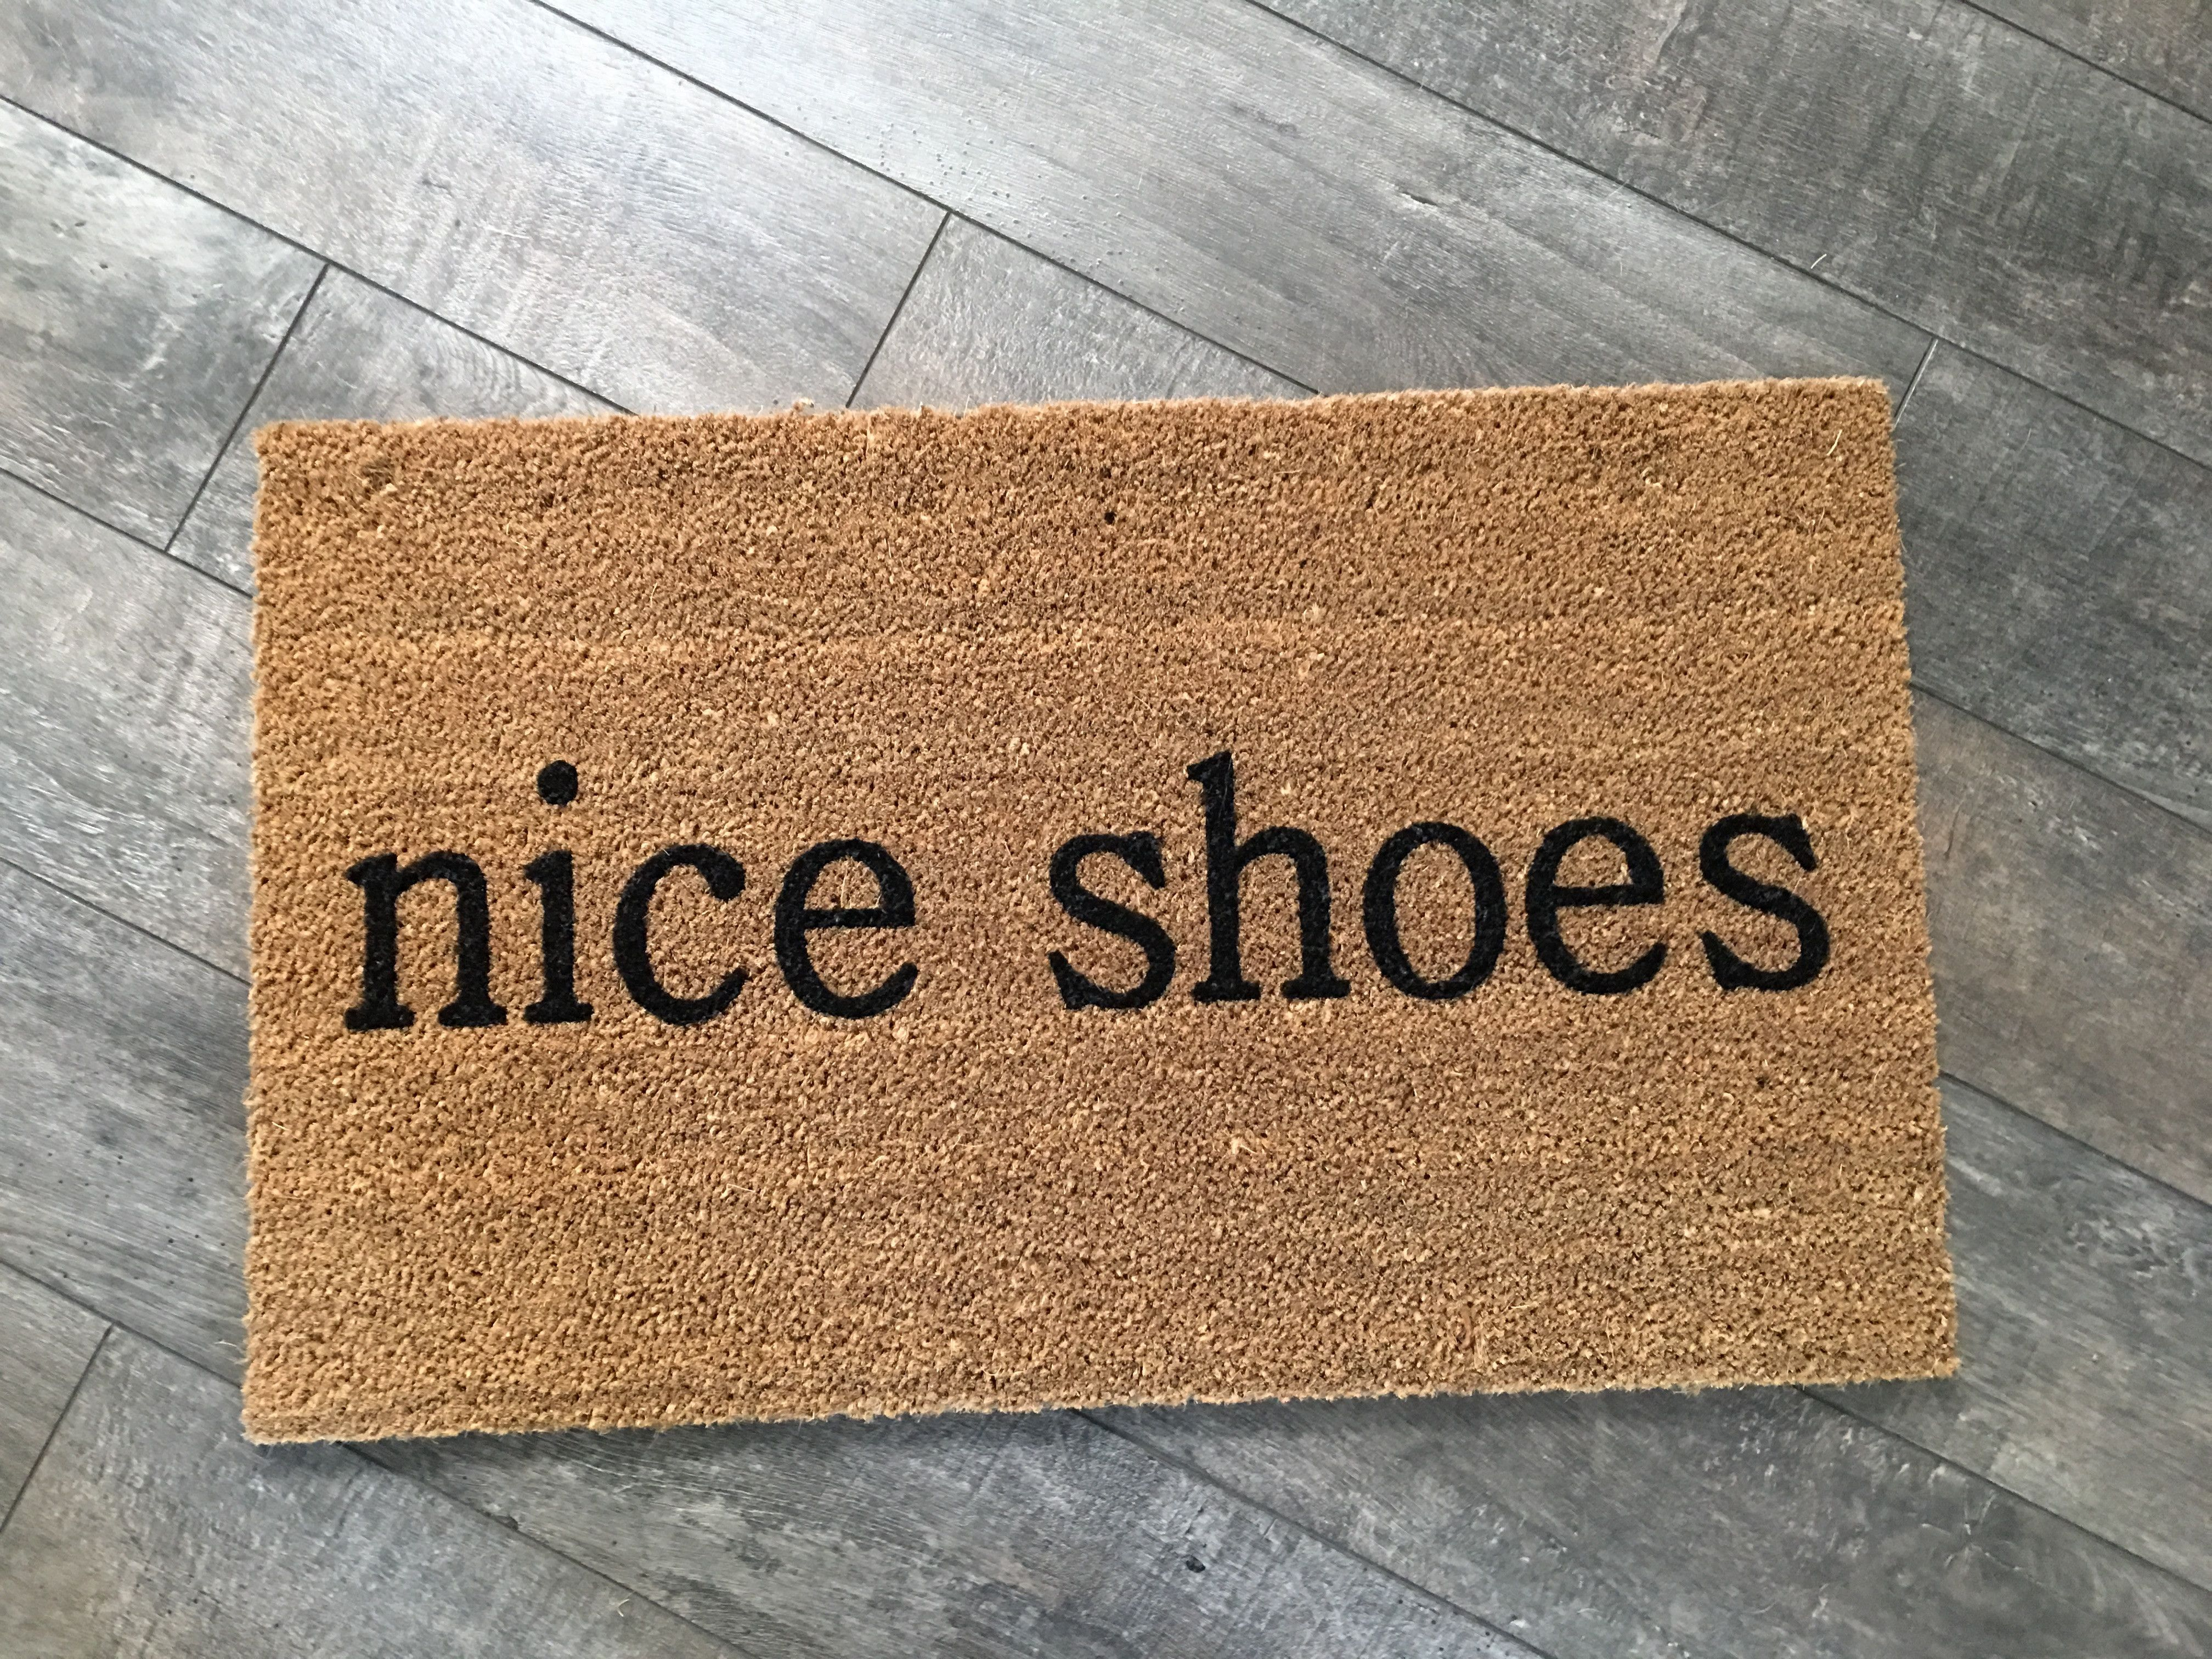 collegiate car full size trucks of businesses mats college door custom front residential rugs rug the logo funny for floor perfect personalized